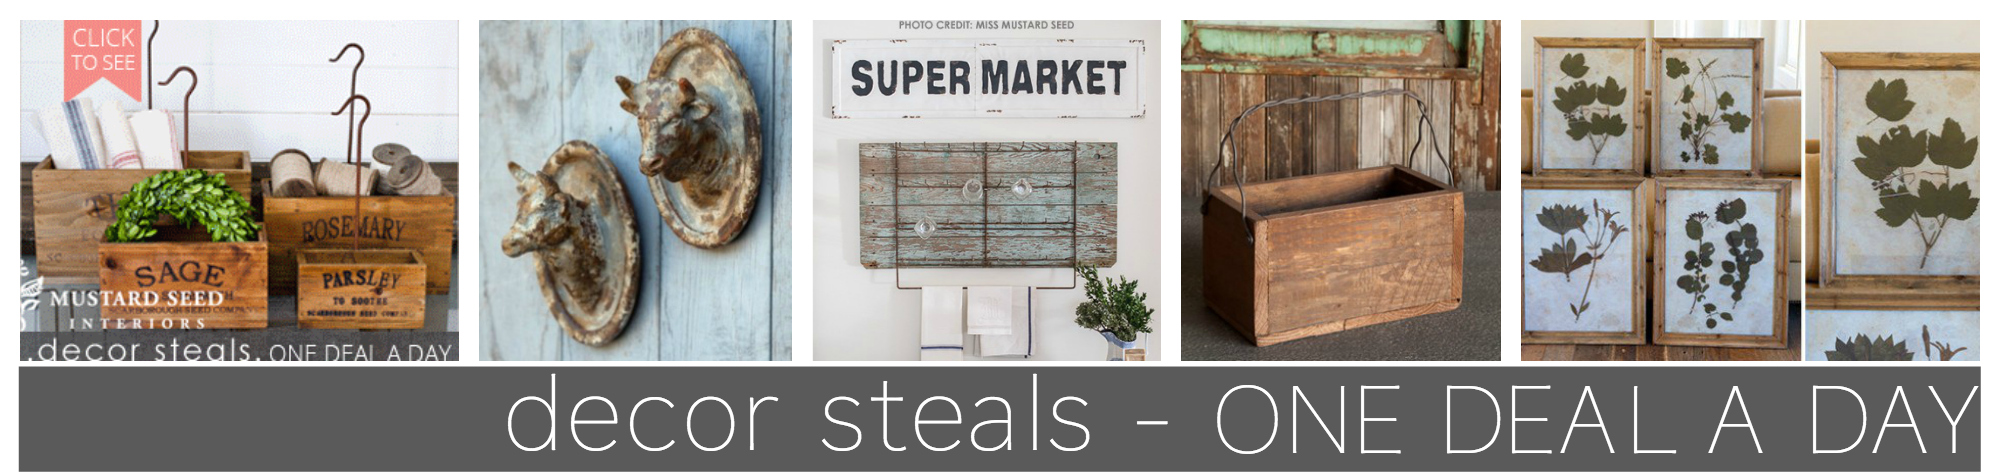 DECOR STEALS